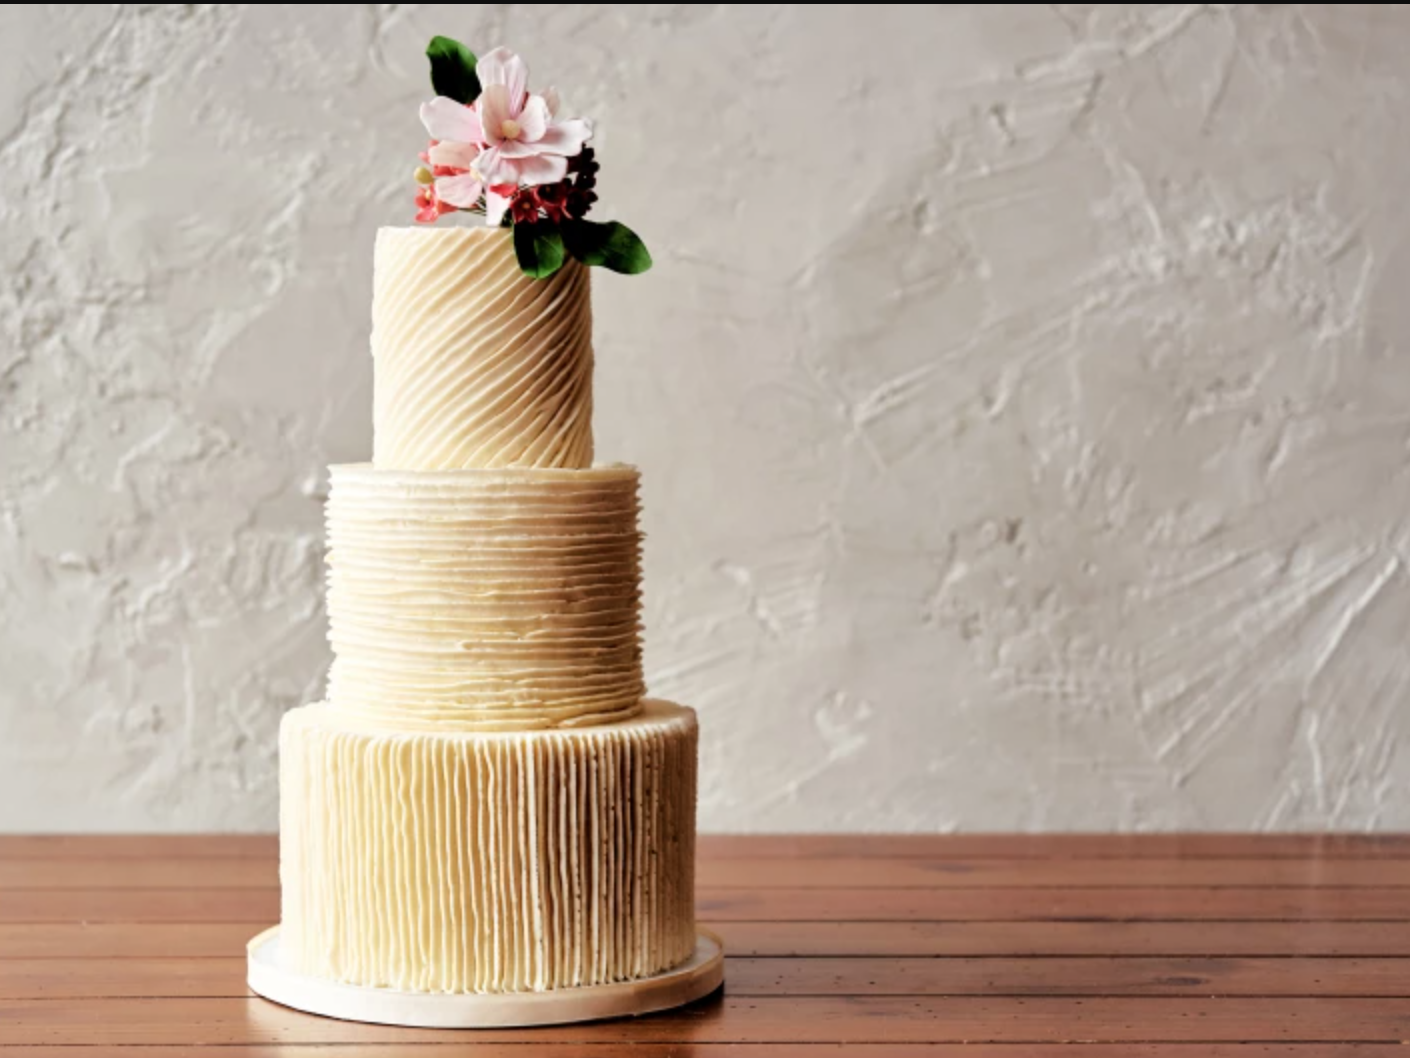 piped ridges buttercream tiered cake